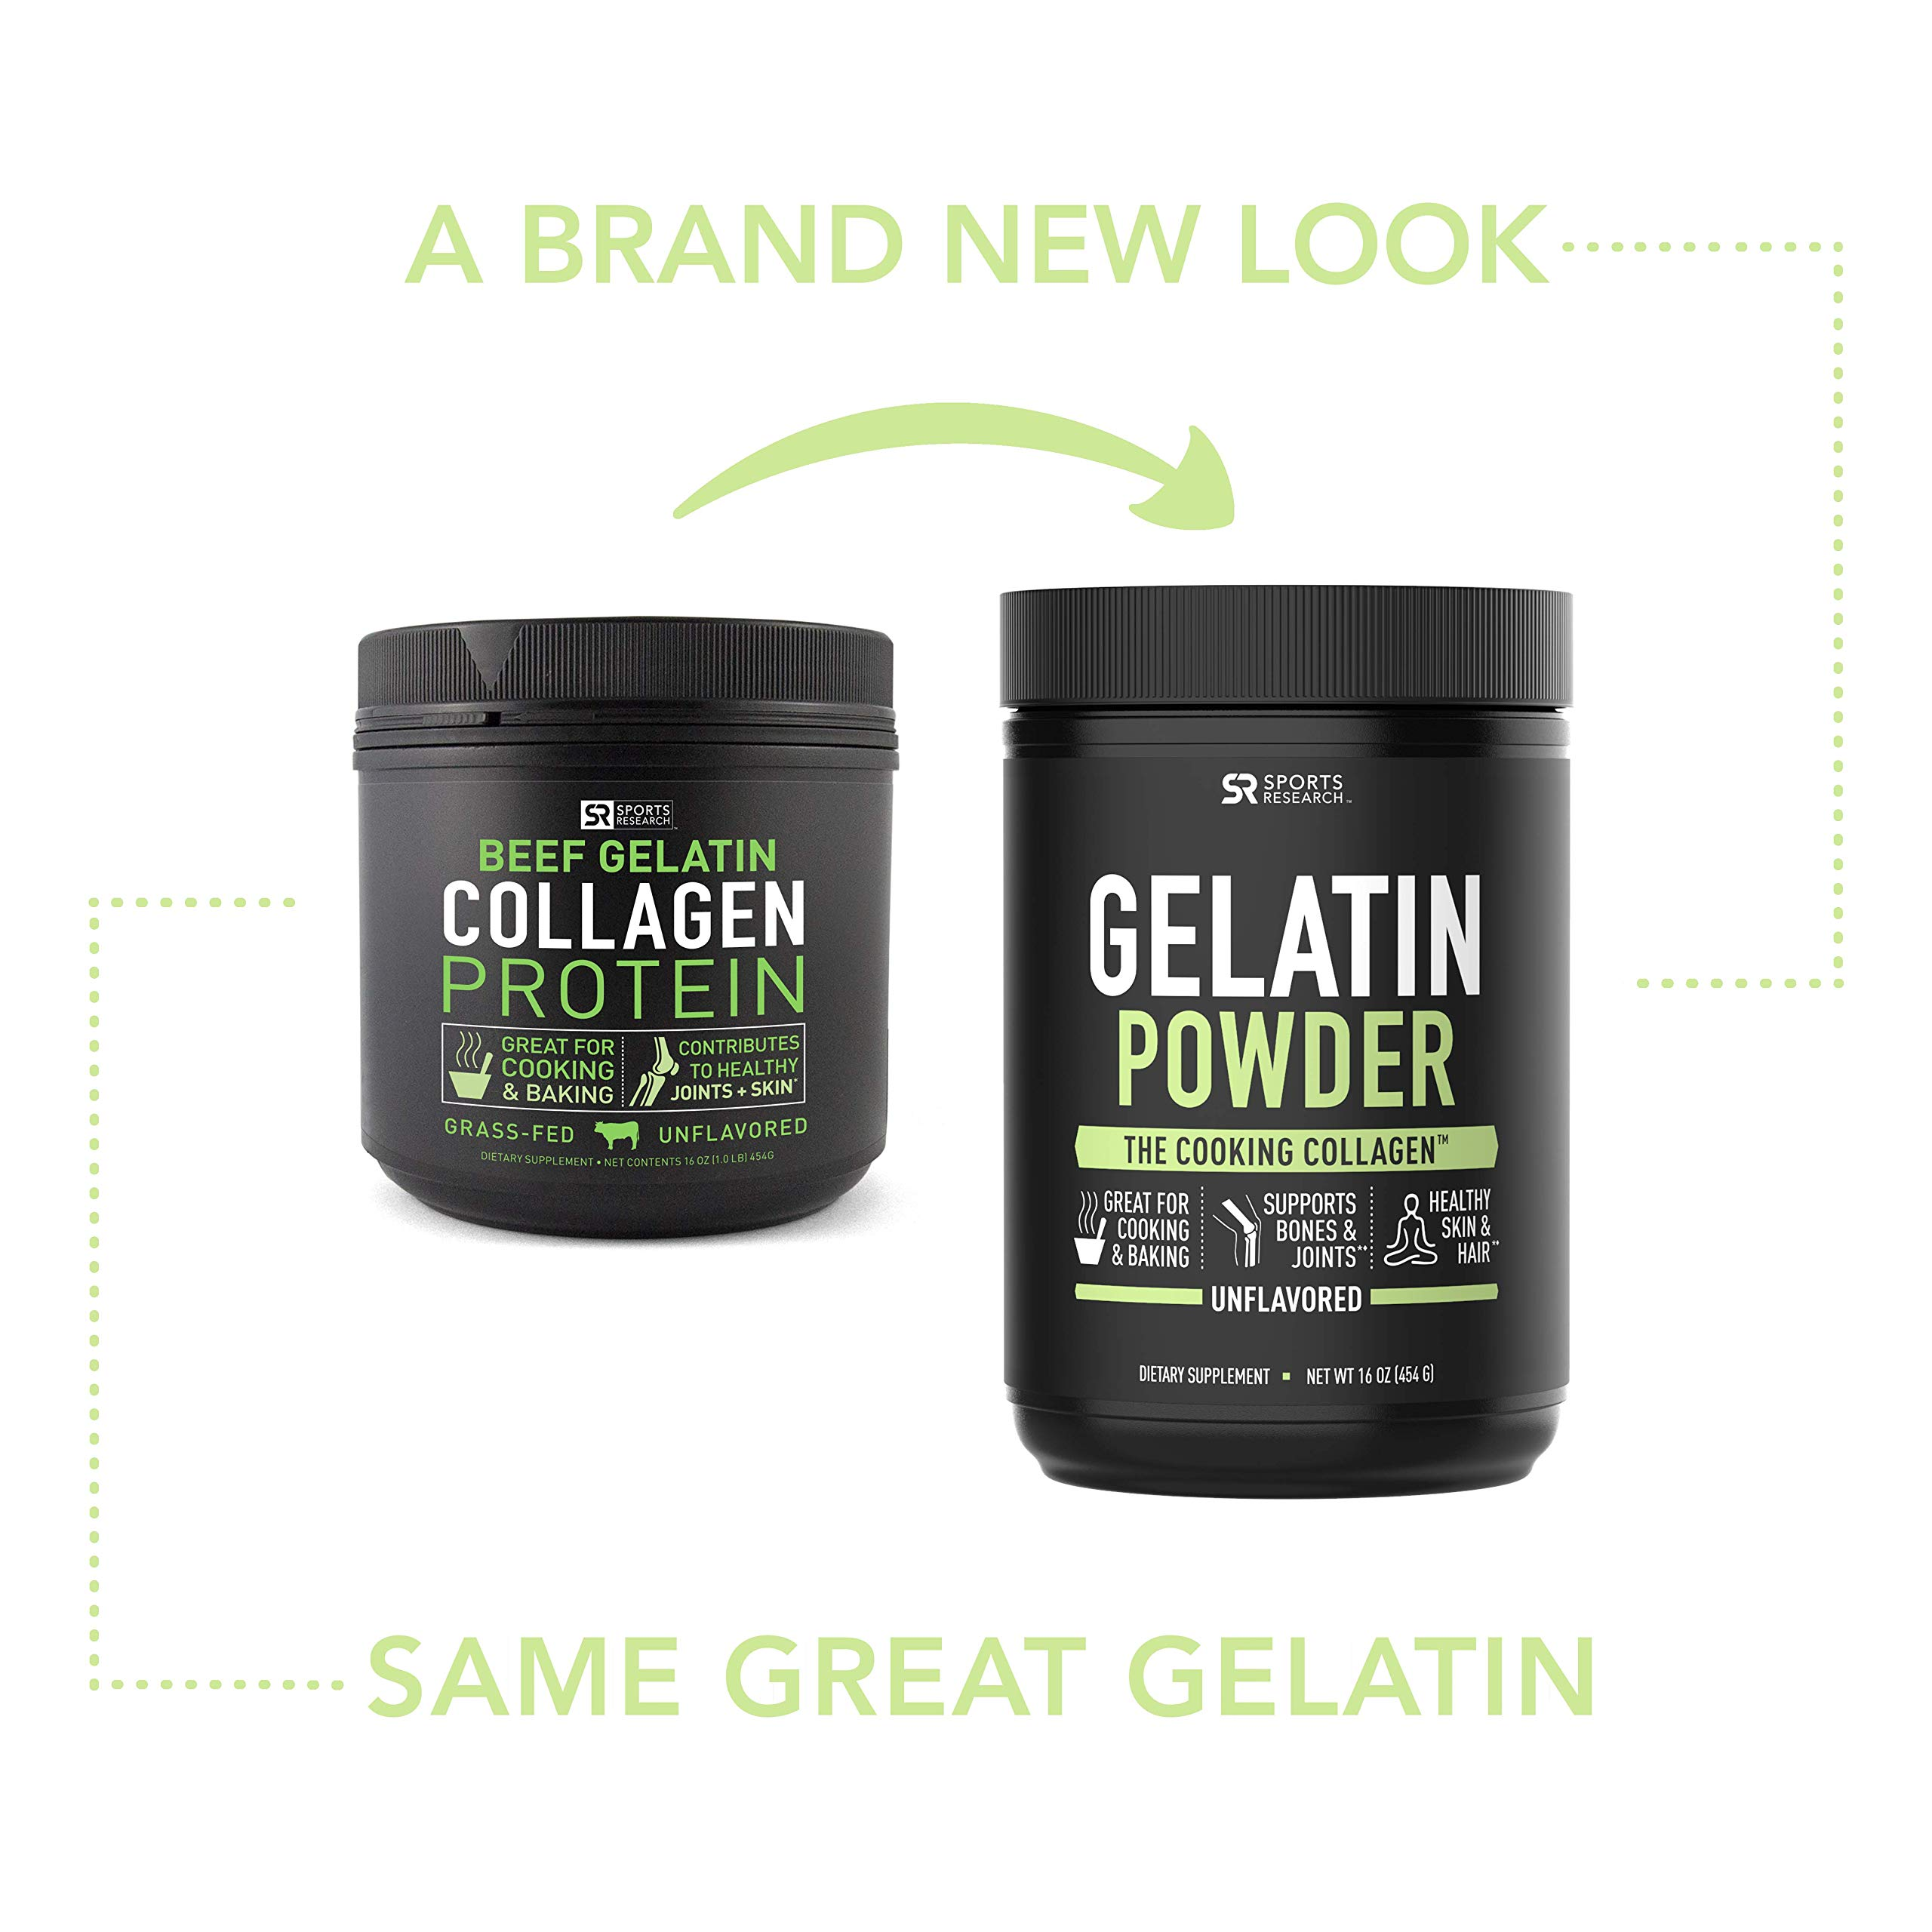 Gelatin Collagen Cooking Powder ~ Sourced from Pasture Raised,Grass-Fed Cows ~ Great for Cooking and Baking~ Certified Keto Friendly and Non-GMO (16oz) by Sports Research (Image #6)